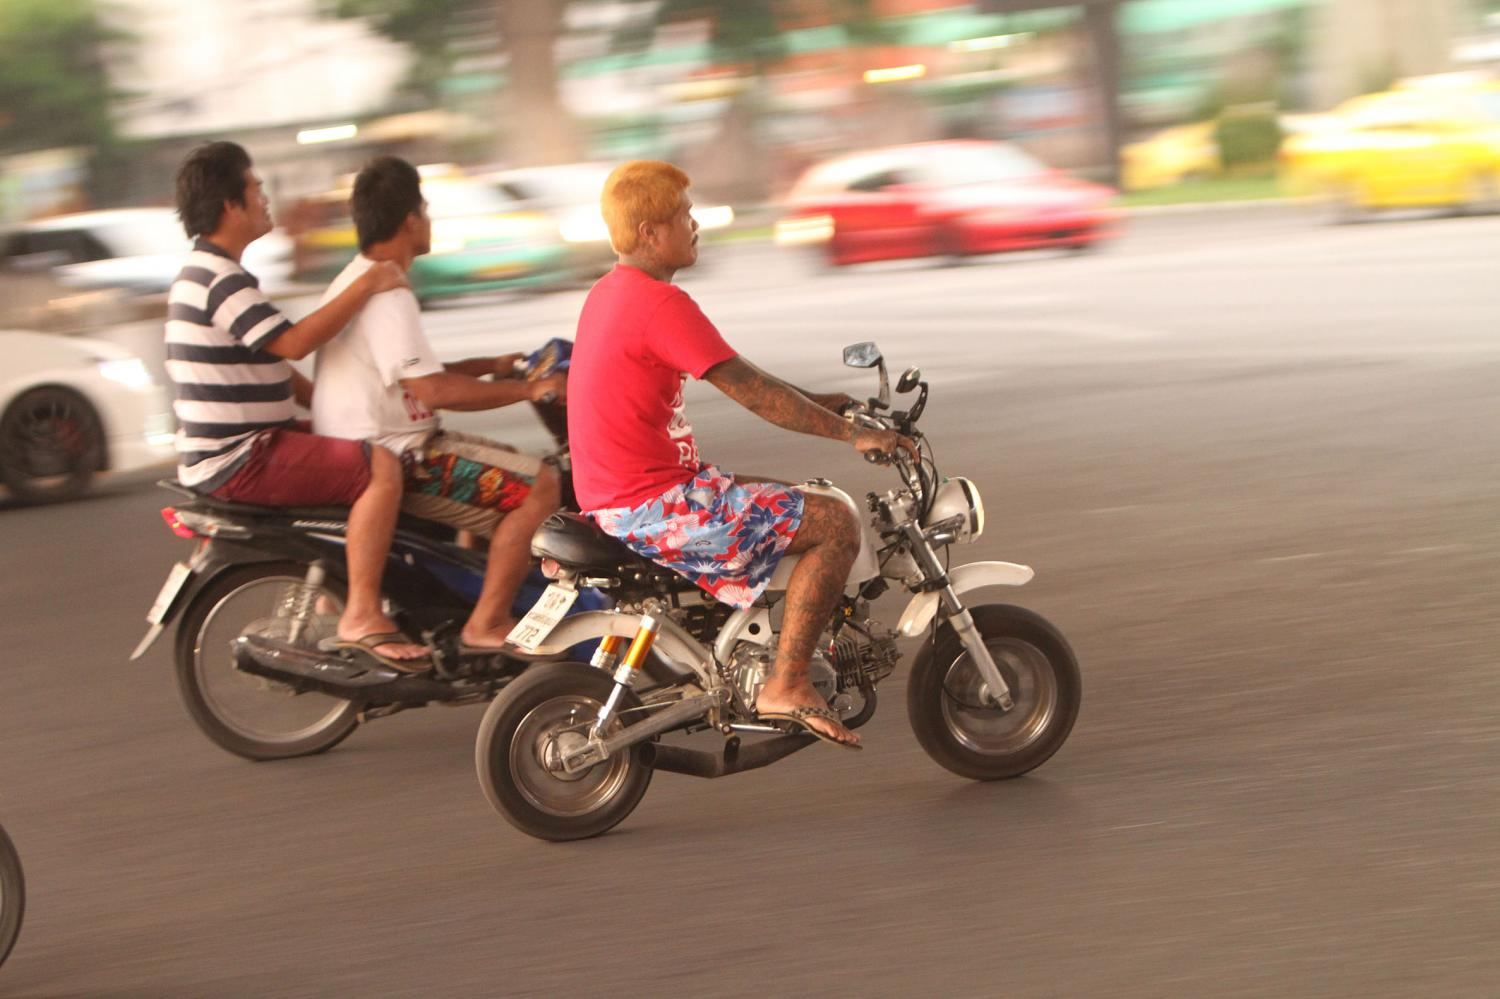 Young motorcycle street racers on Bangkok's main roads. Police are warning they will take legal action against them for causing a public nuisance.(Bangkok file photo)